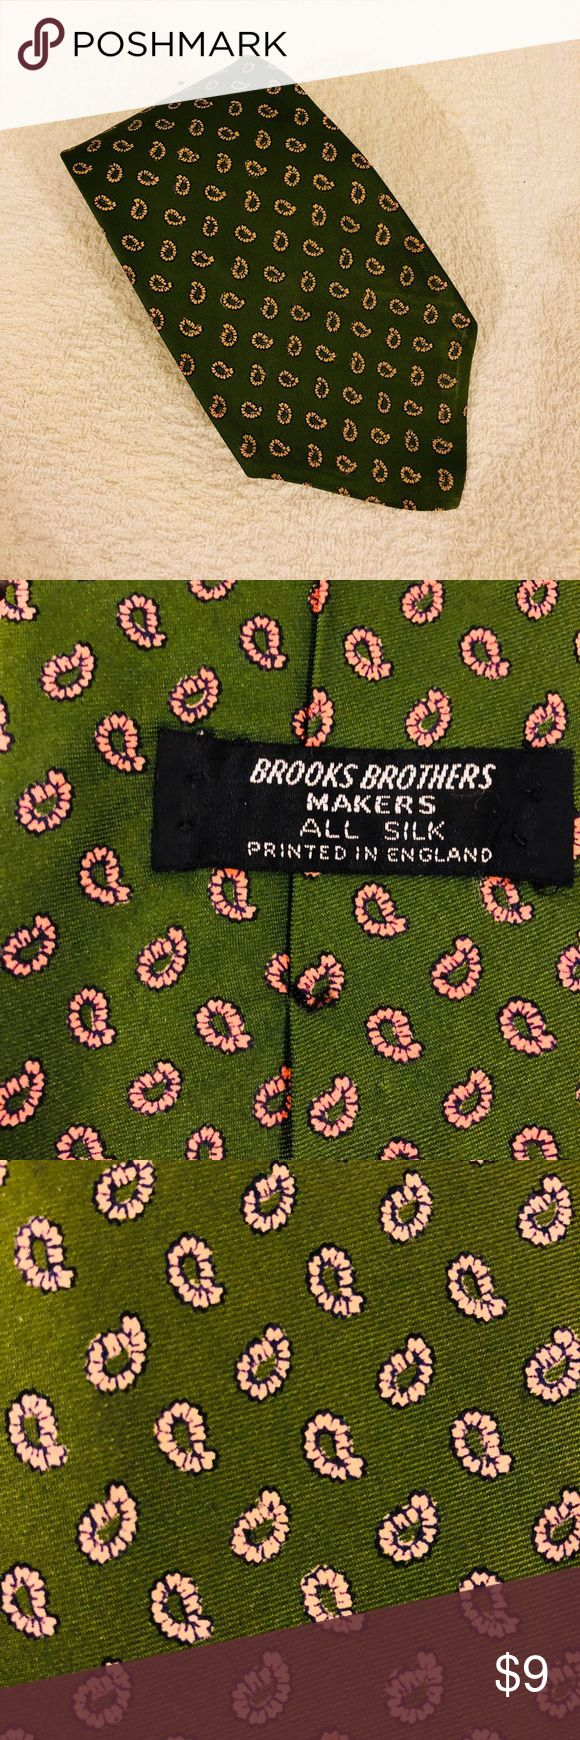 Brooks Brothers Green w/ Pink Paisley Check Tie Brooks Brothers Green With Pink and White Paisley Check Silk Necktie! Good condition! Please make reasonable offers and bundle! Ask questions! Brooks Brothers Accessories Ties